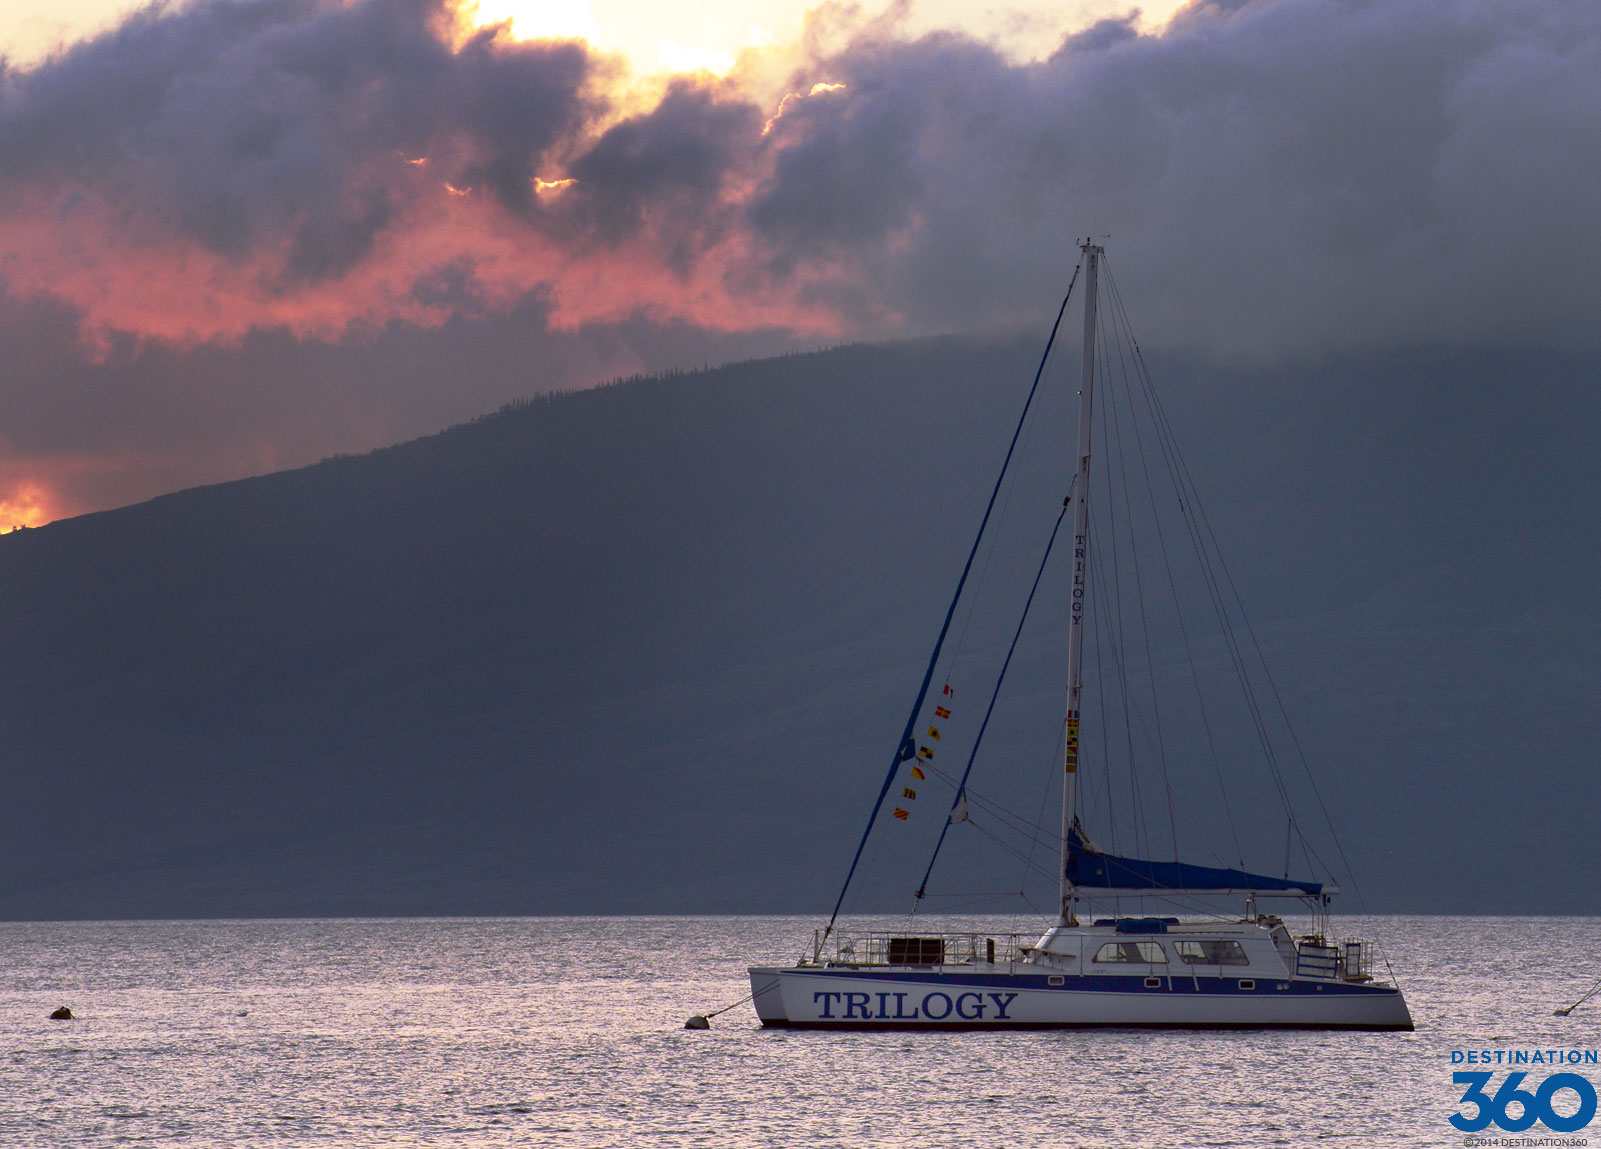 Trilogy Excursions Maui